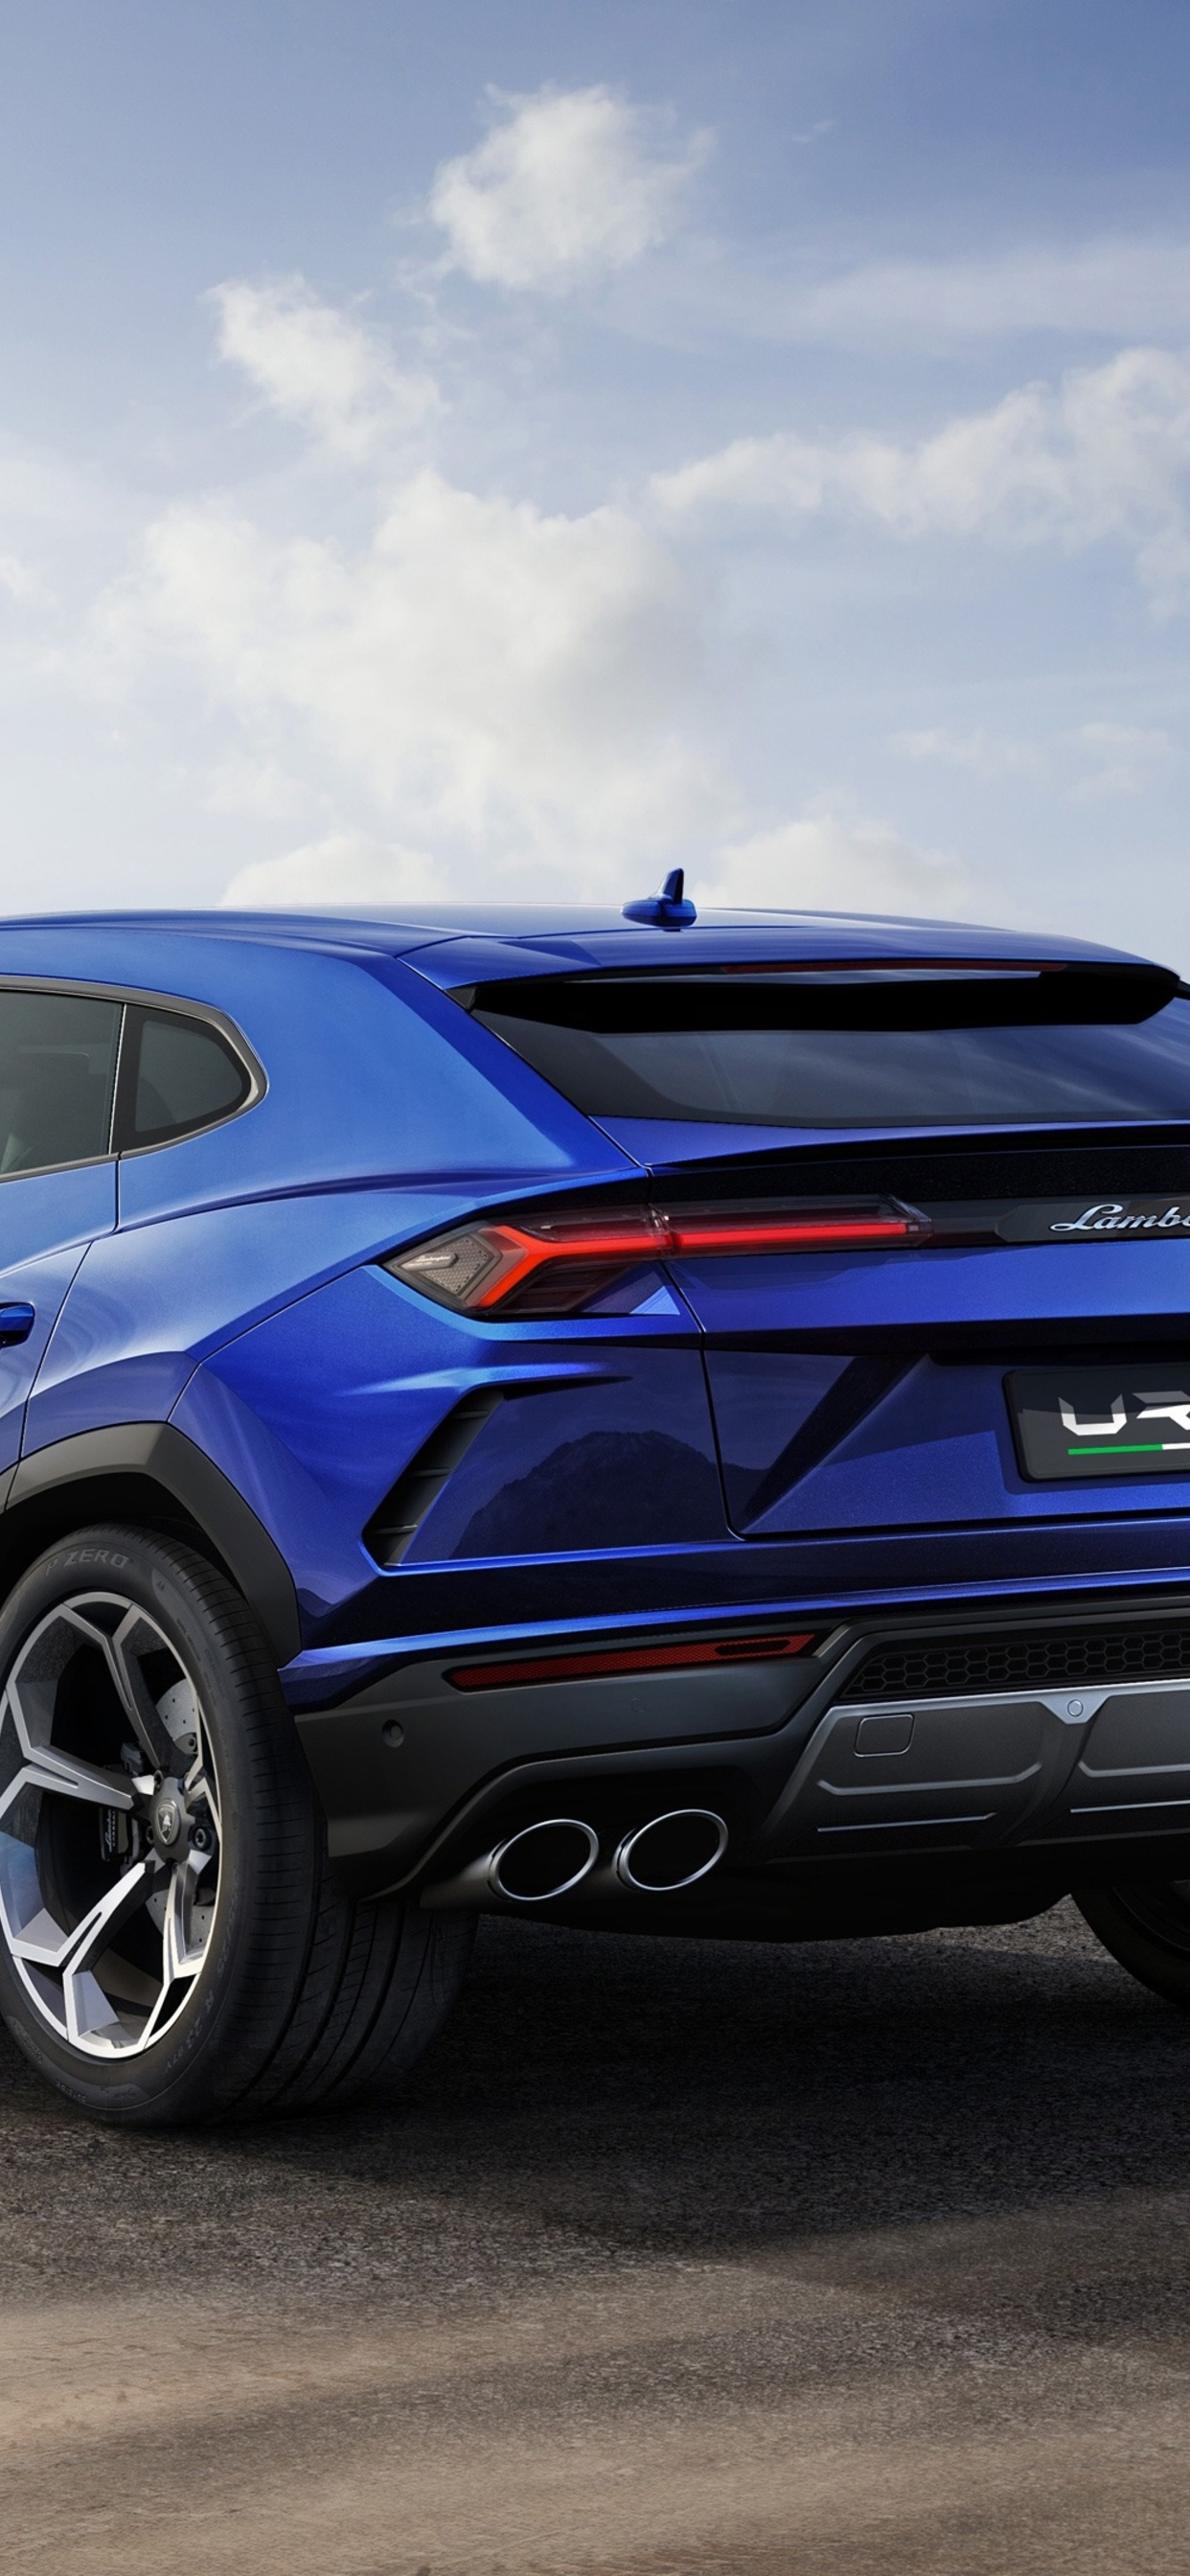 1242x2688 Lamborghini Urus Blue Color 4k Iphone Xs Max Hd 4k